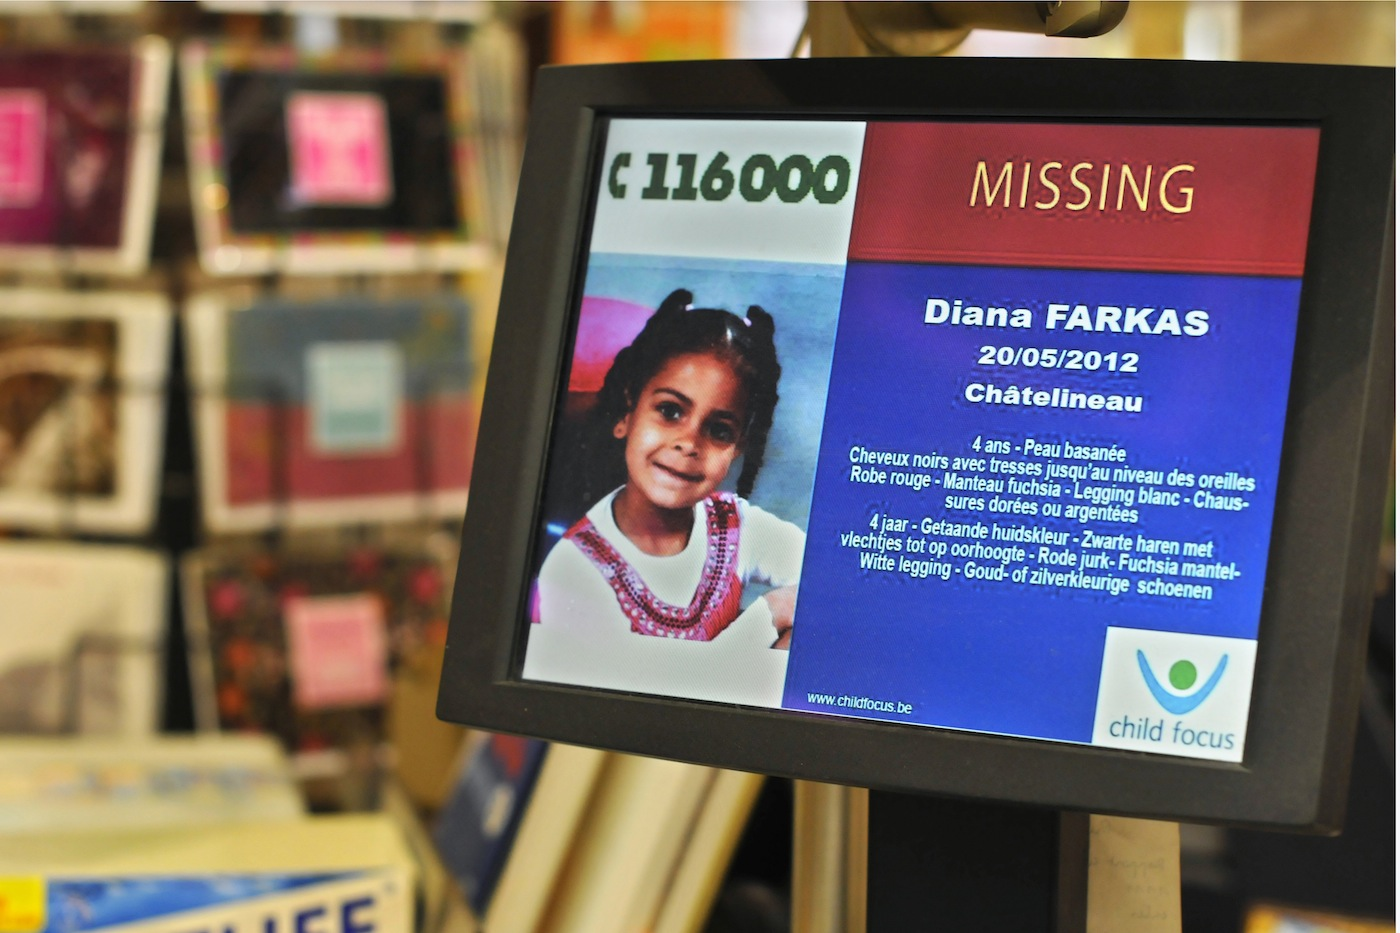 Great idea: Turn your website error pages into bulletins to help find missing children